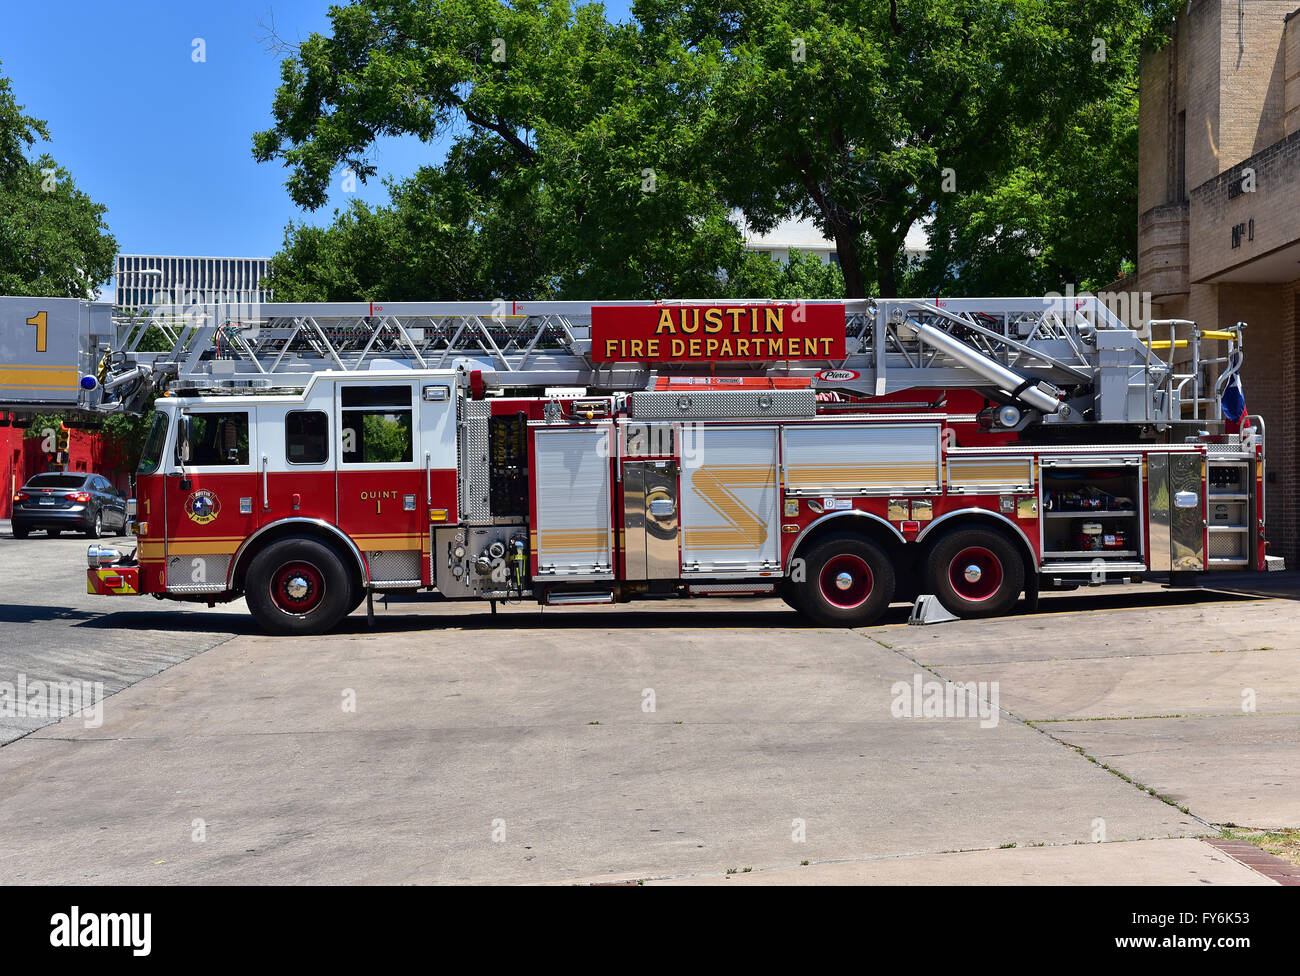 Fire truck from Austin, Texas.August 2015.Fire truck standing in the driveway in front of the fire station.Editorial.Horizontal - Stock Image